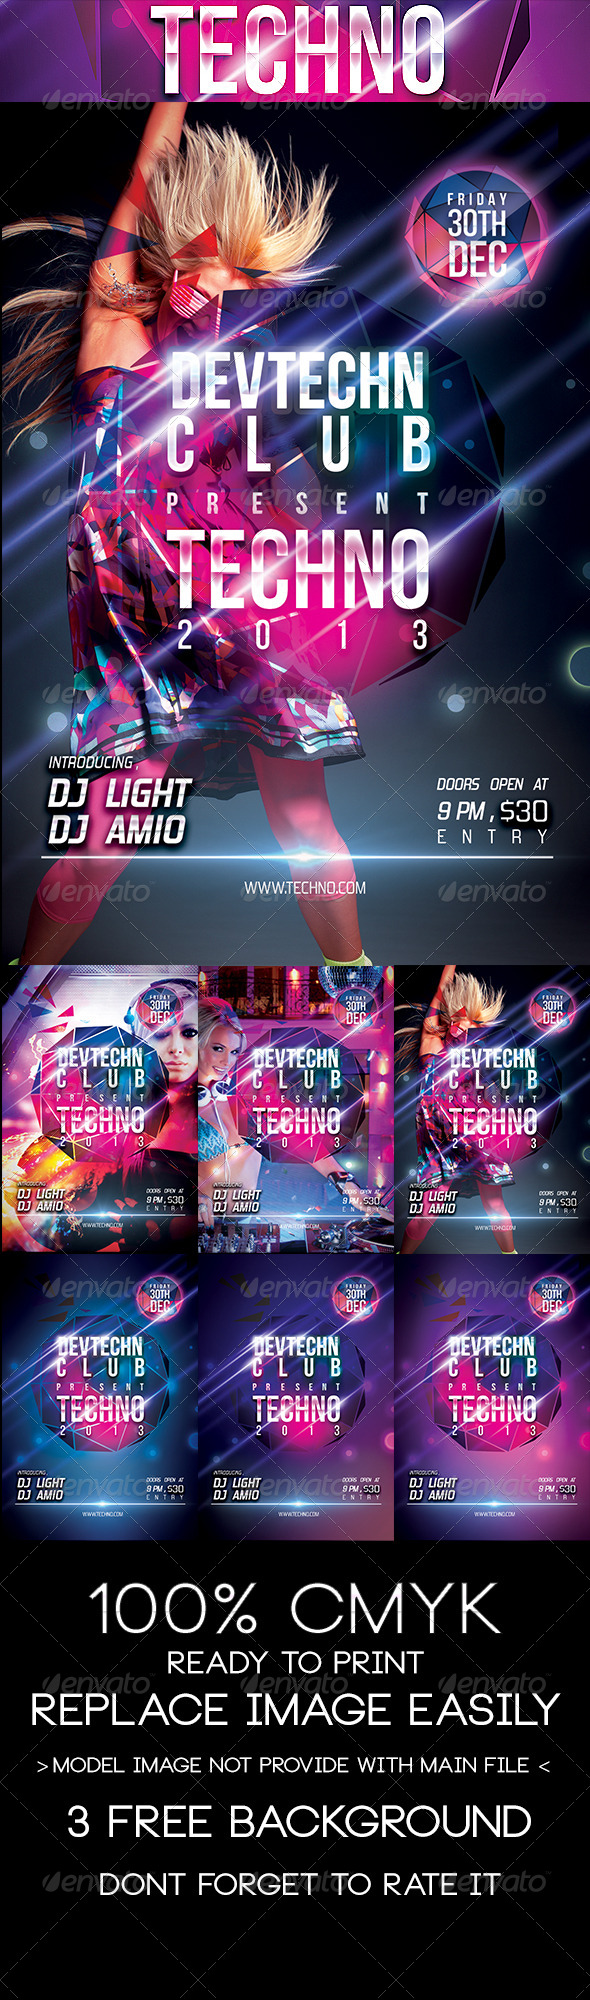 Techno Party Flyer Templates  Afanur Rashid    Techno